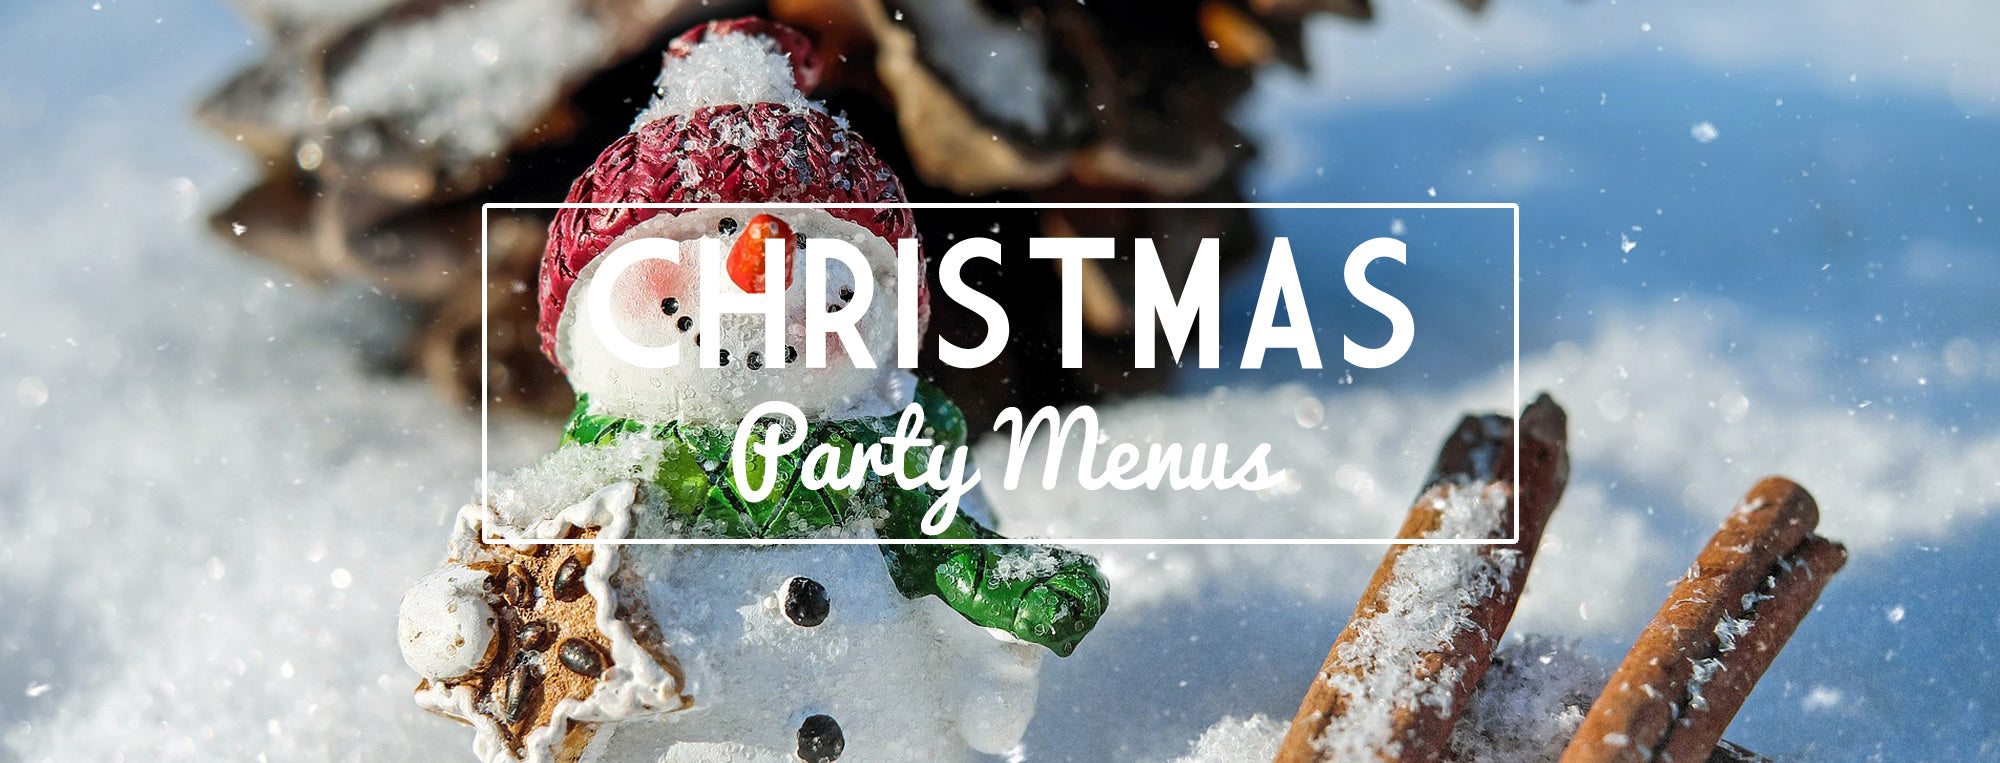 Christmas Party Menu and Christmas Party Venue in Newport